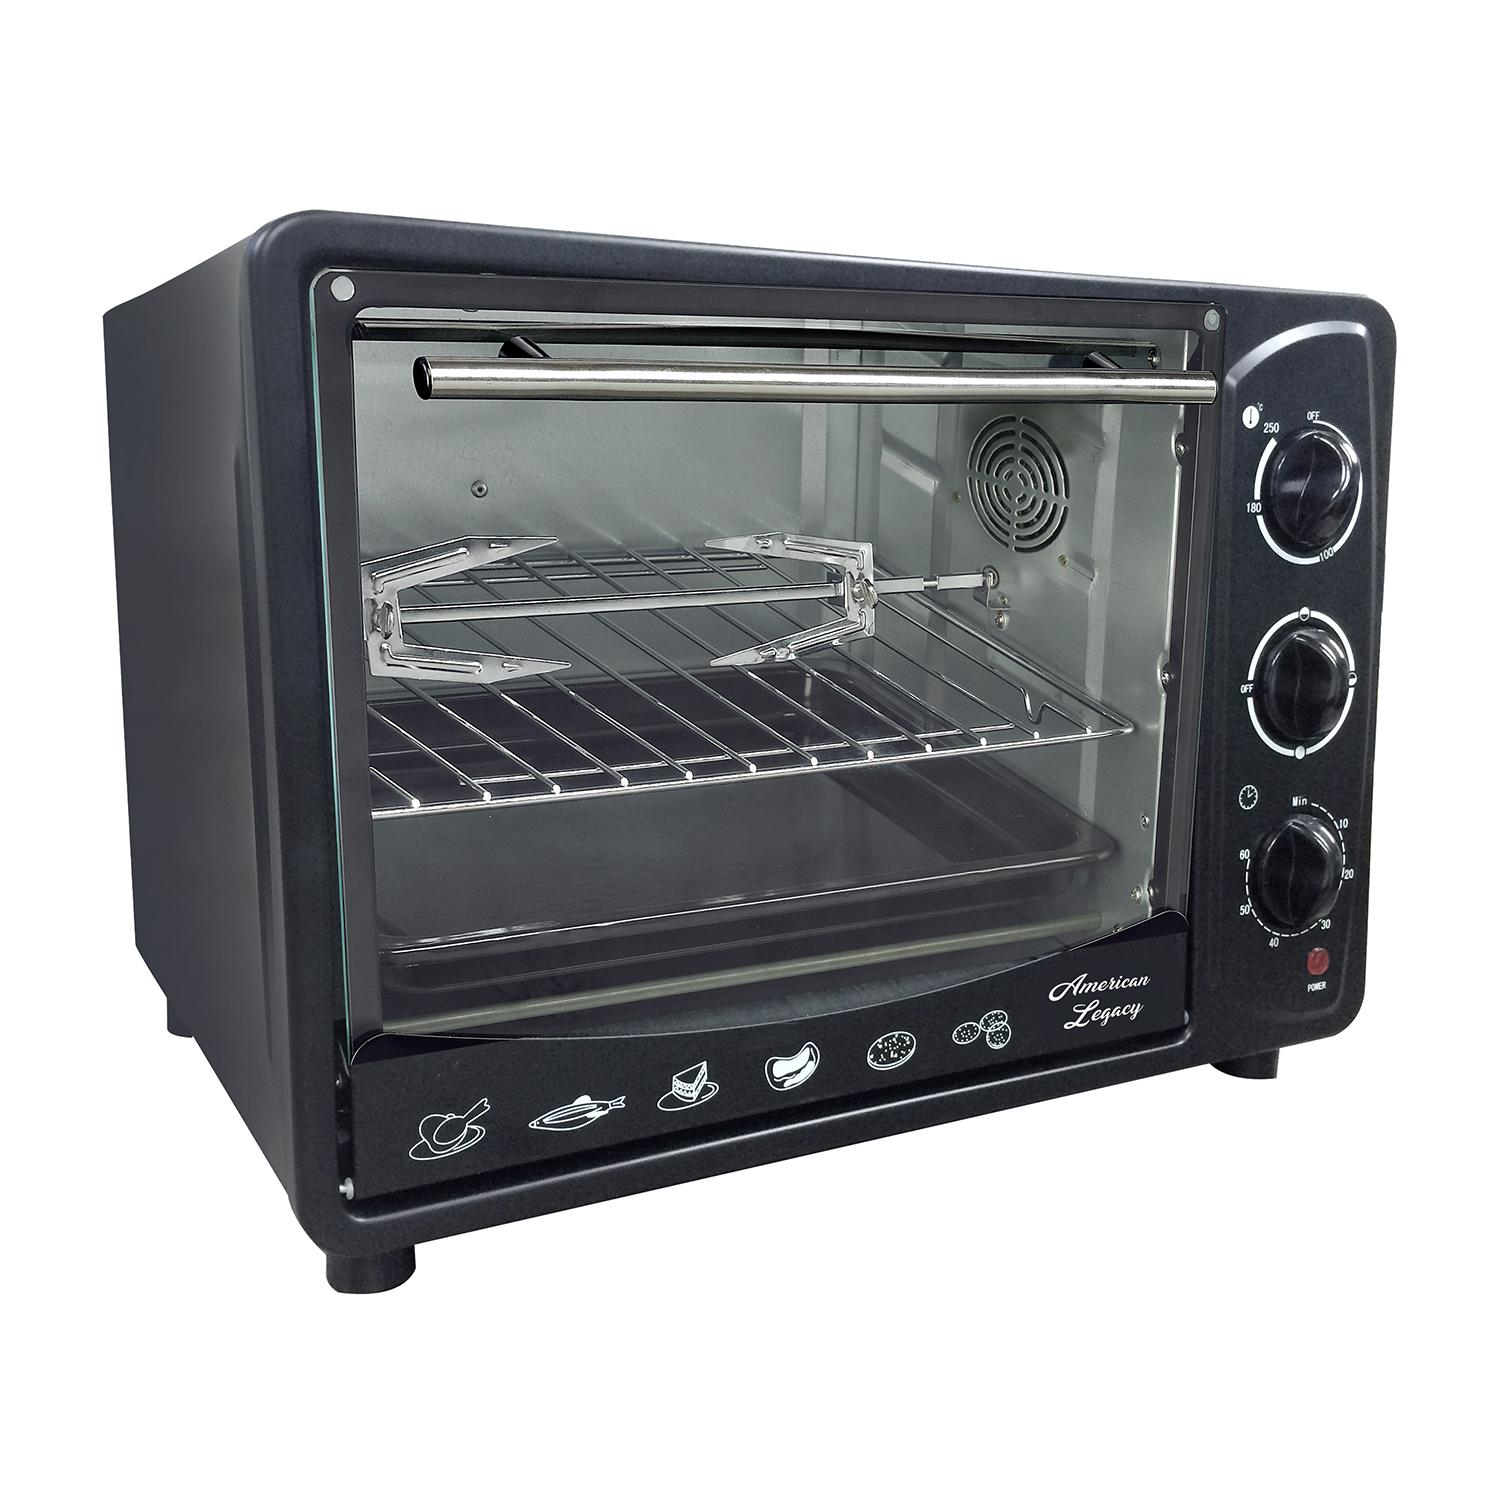 Oven For Sale Toaster Prices Brands Review In Philippines Electric Relay American Legacy 30 Litre W Rotisserie Convection Alot 6409